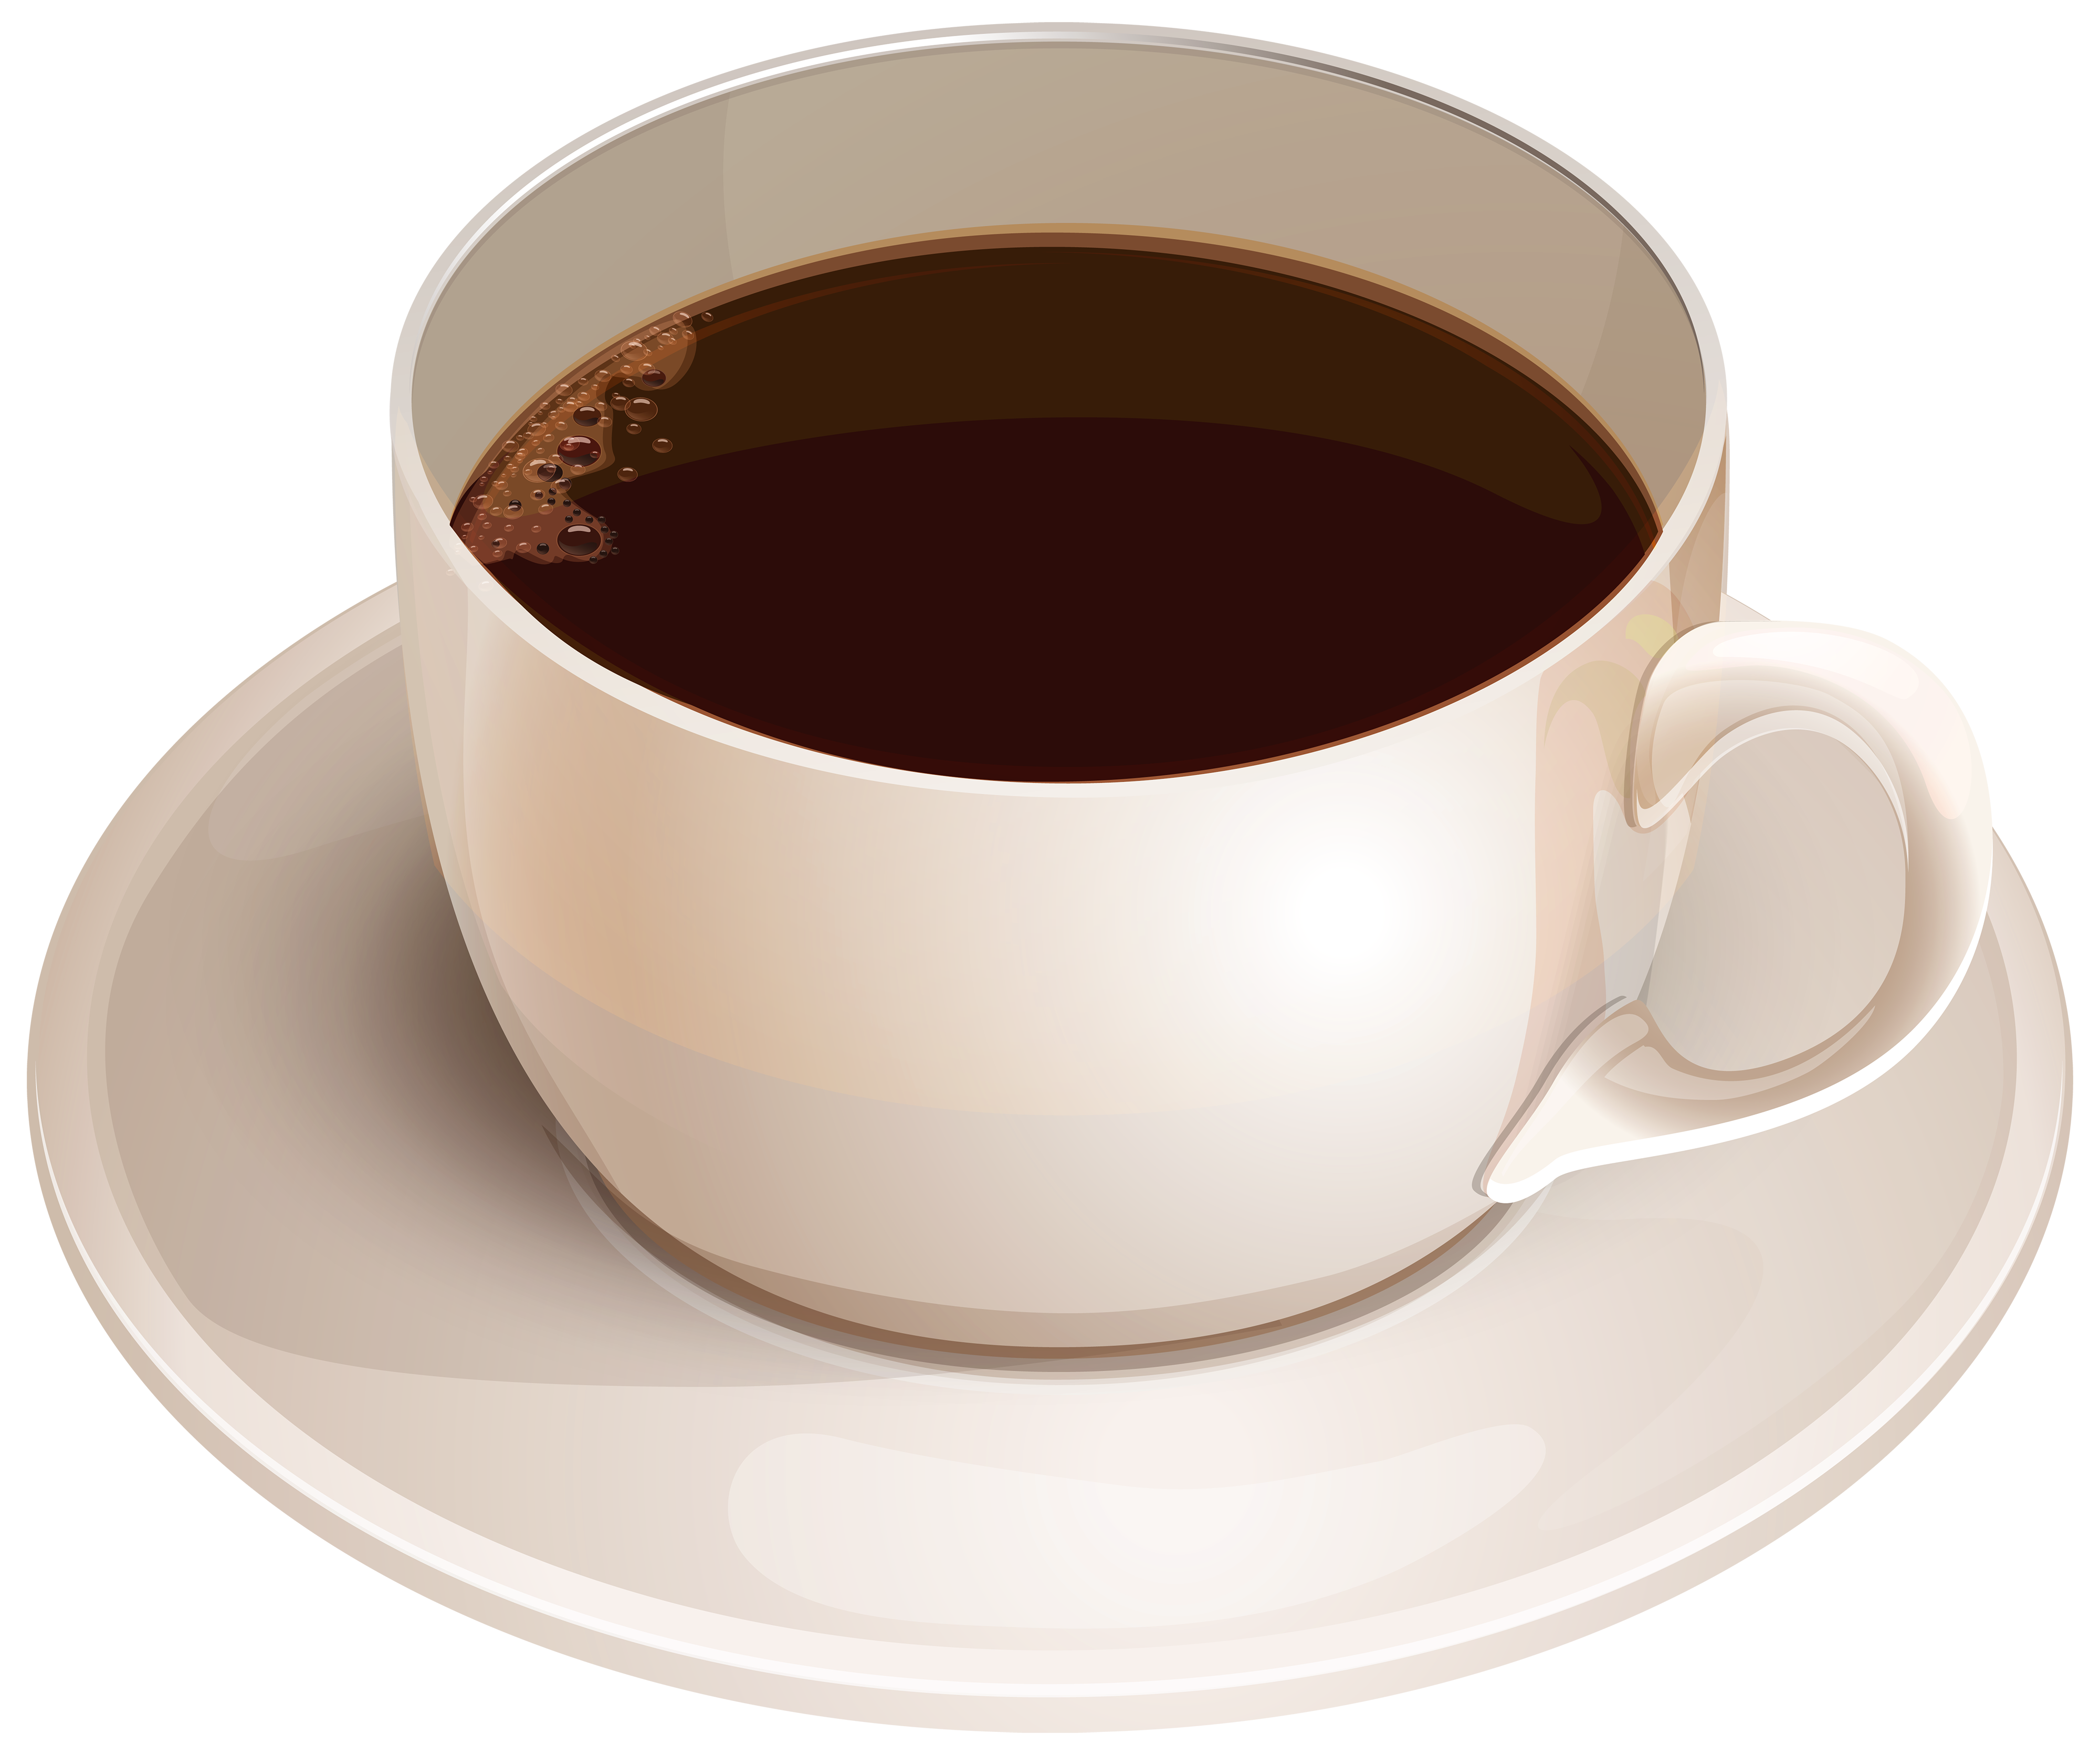 White cup with clipart. Coffee png images